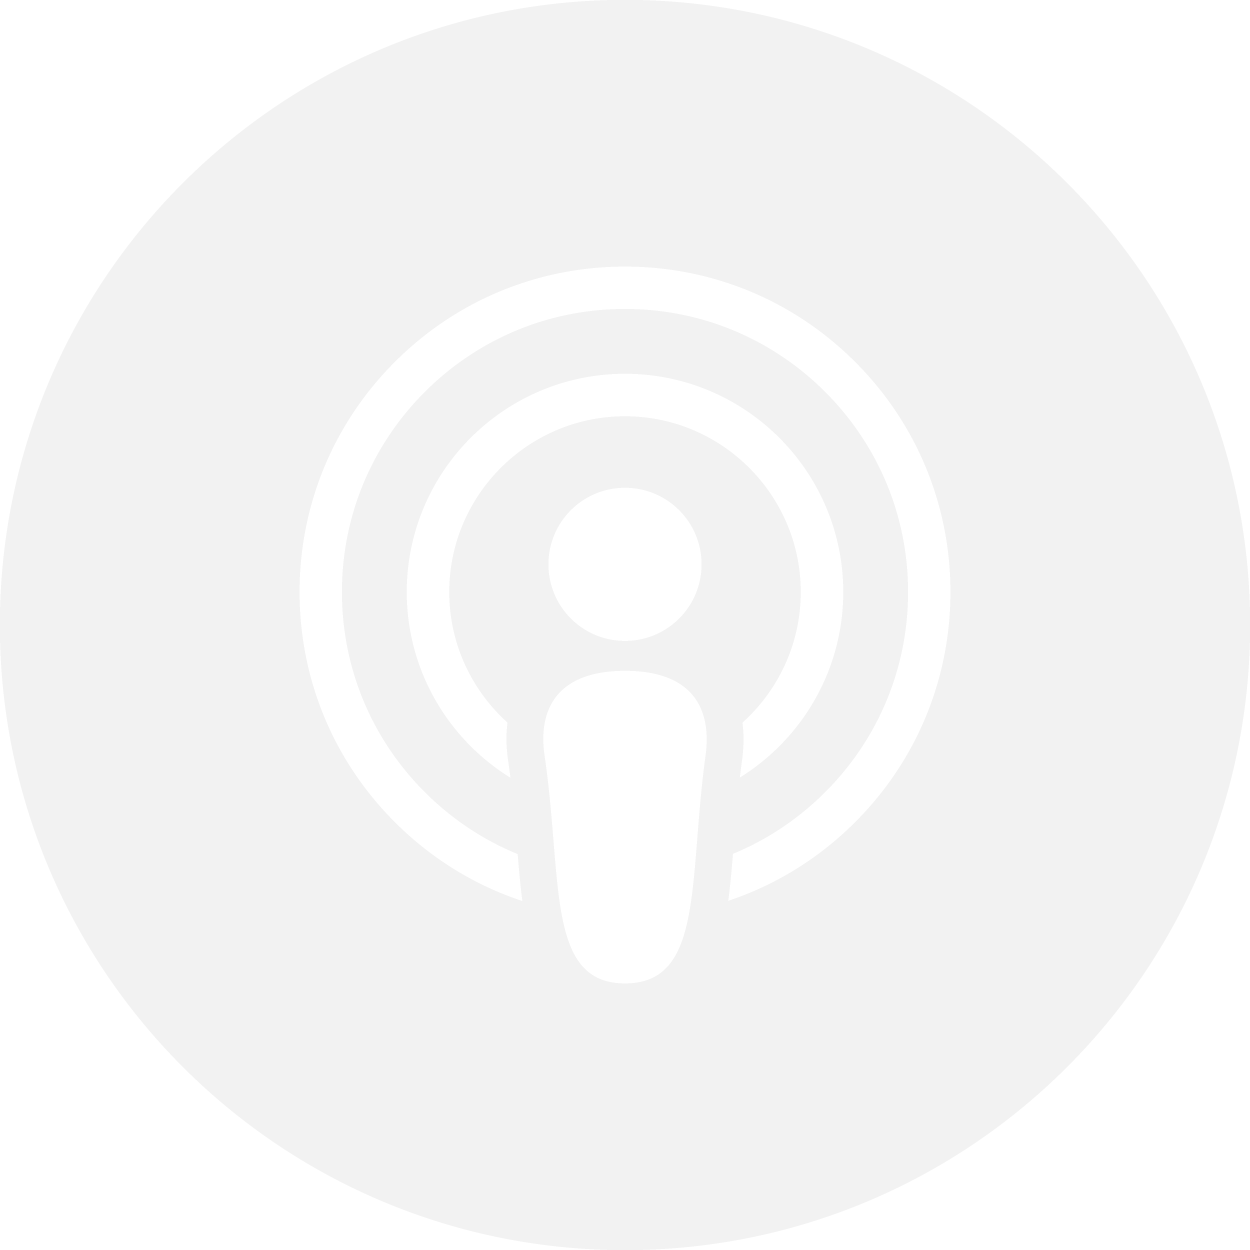 Podcast Platforms Logos-01.png